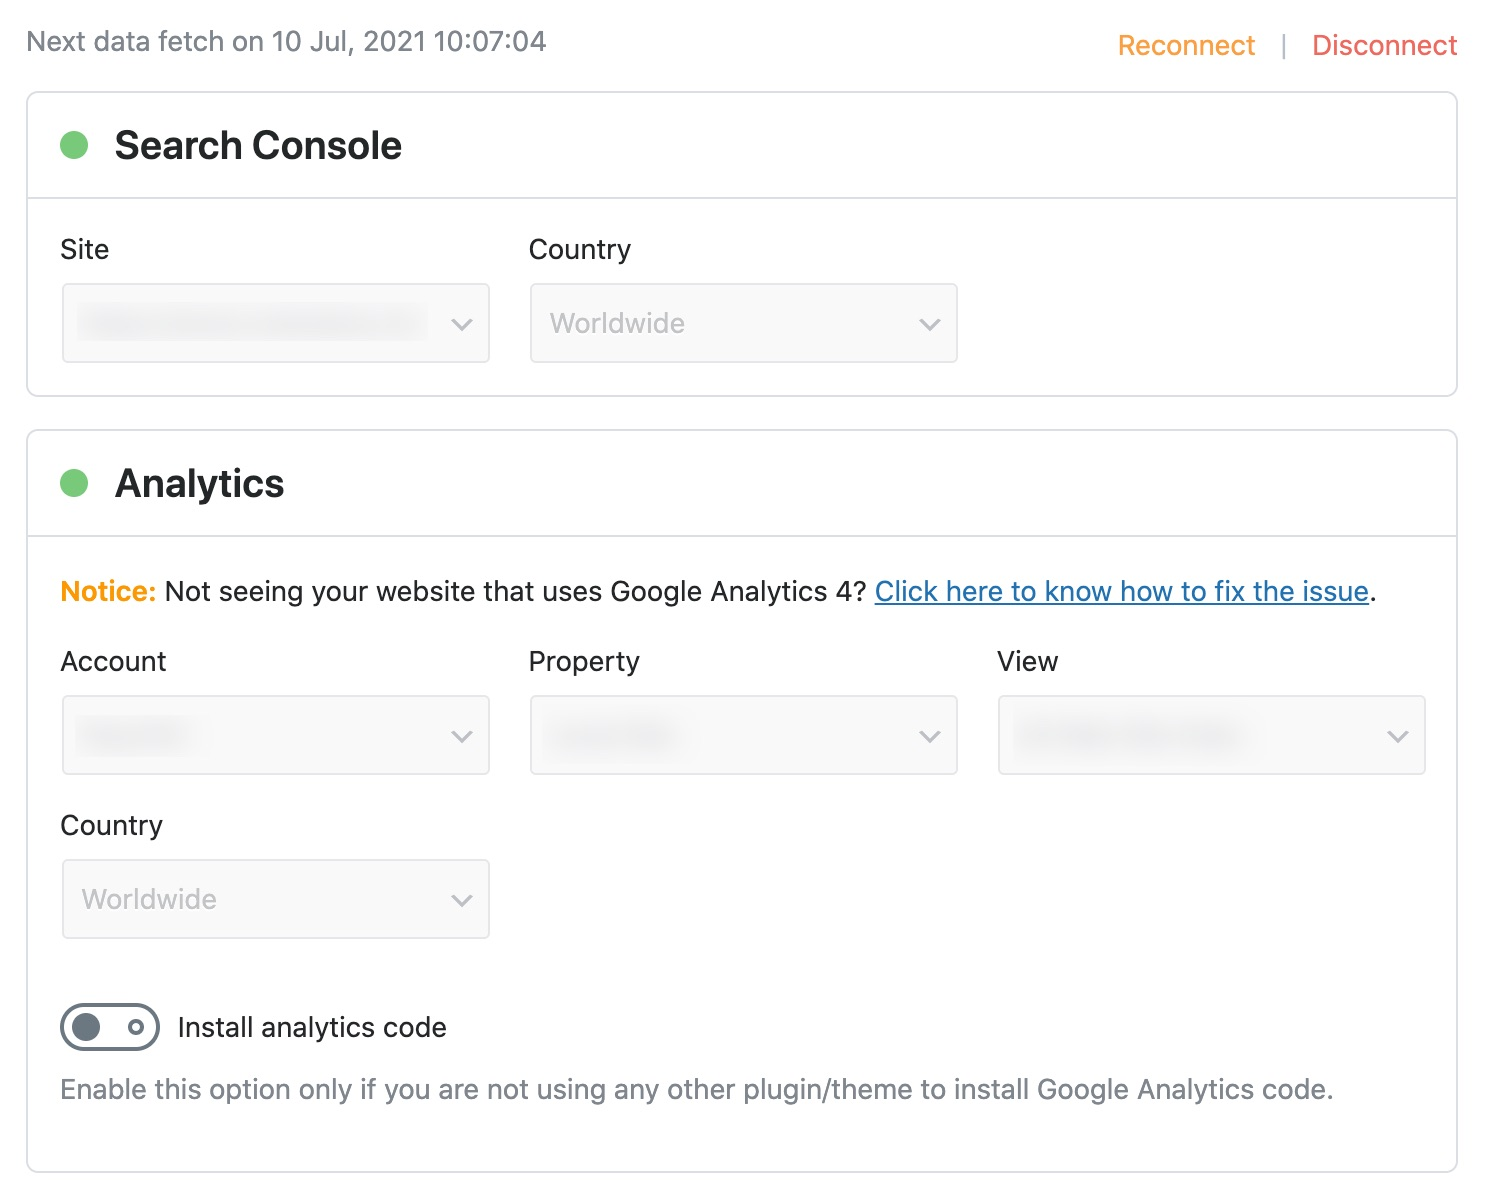 Search Console and Analytics configuration